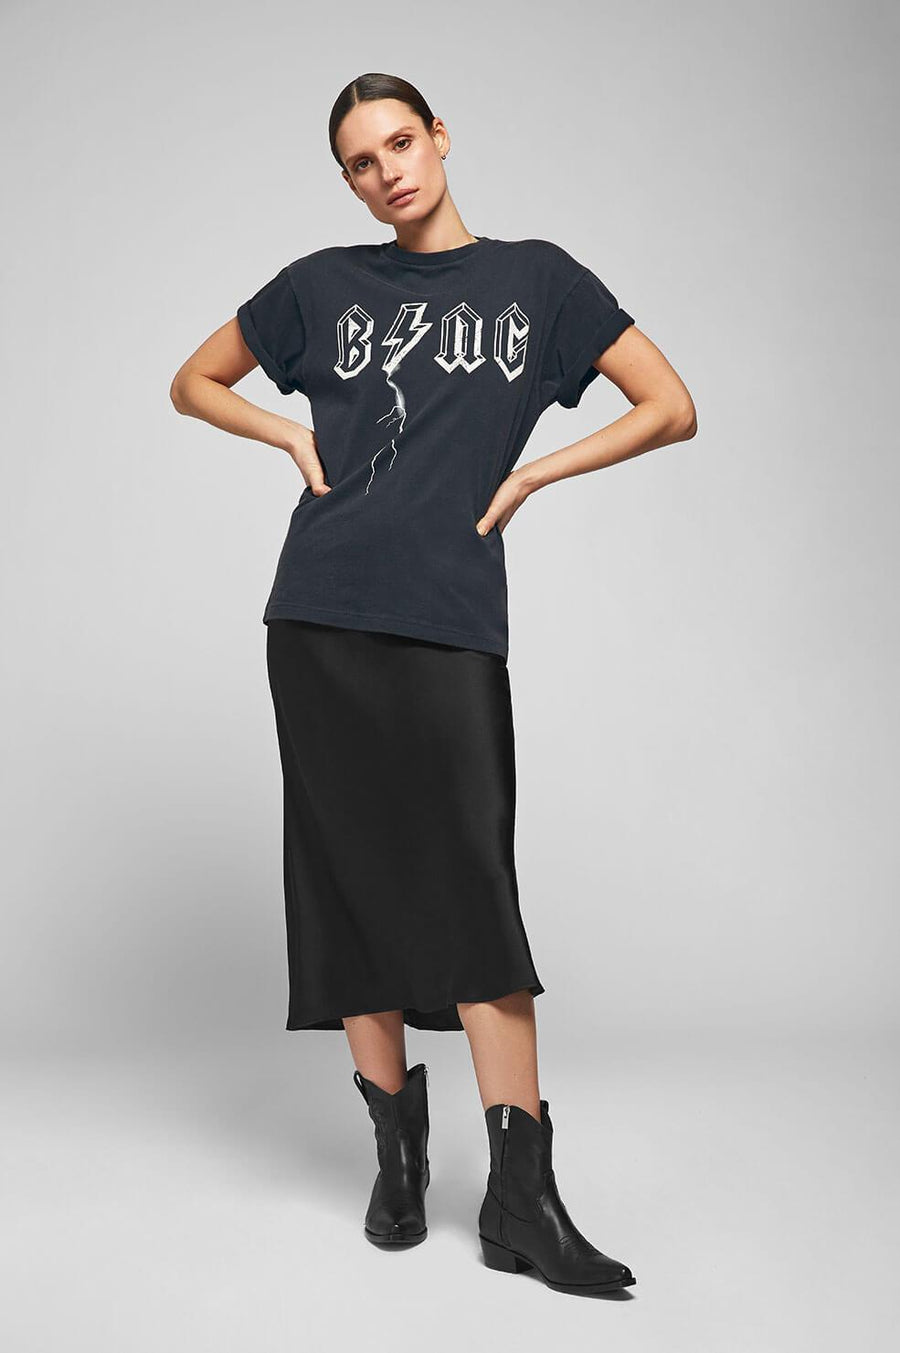 Bing Bolt Tee - Black - Pavilion